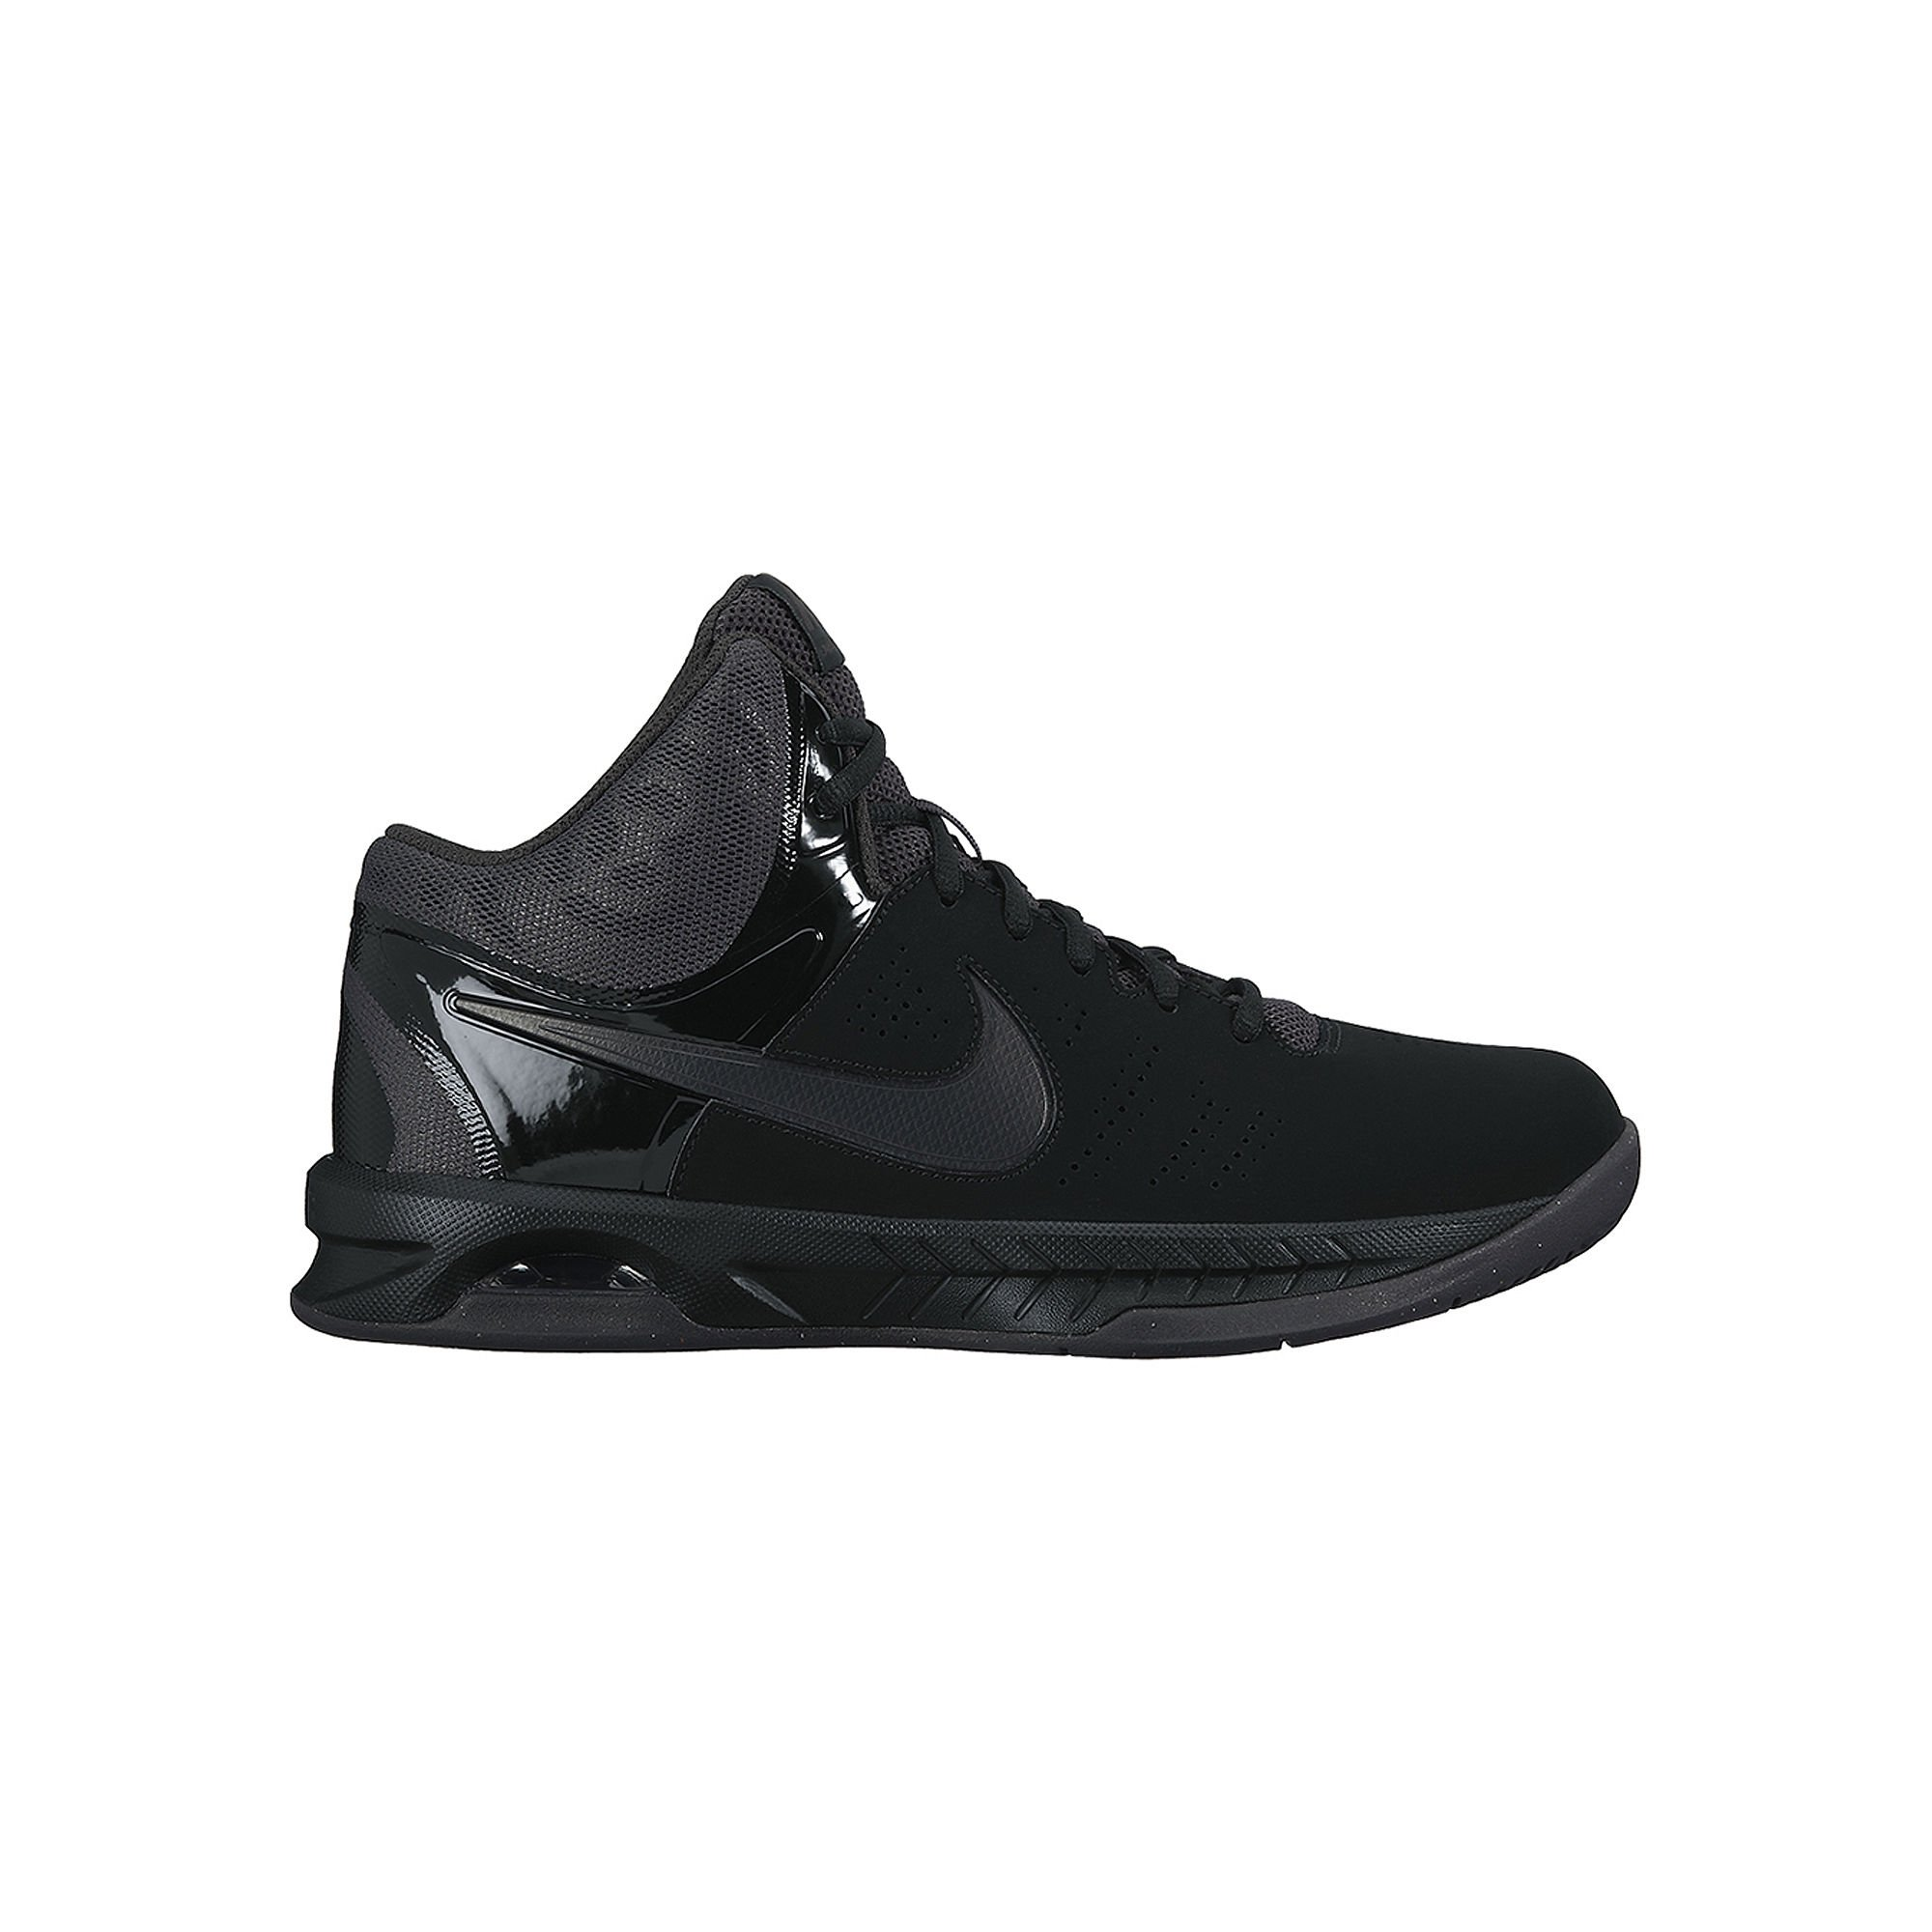 caefc0eb0fe7 Galleon - Nike Air Visi Pro VI NBK Mens Basketball Shoes (10.5 D(M) US)  Black Anthracite